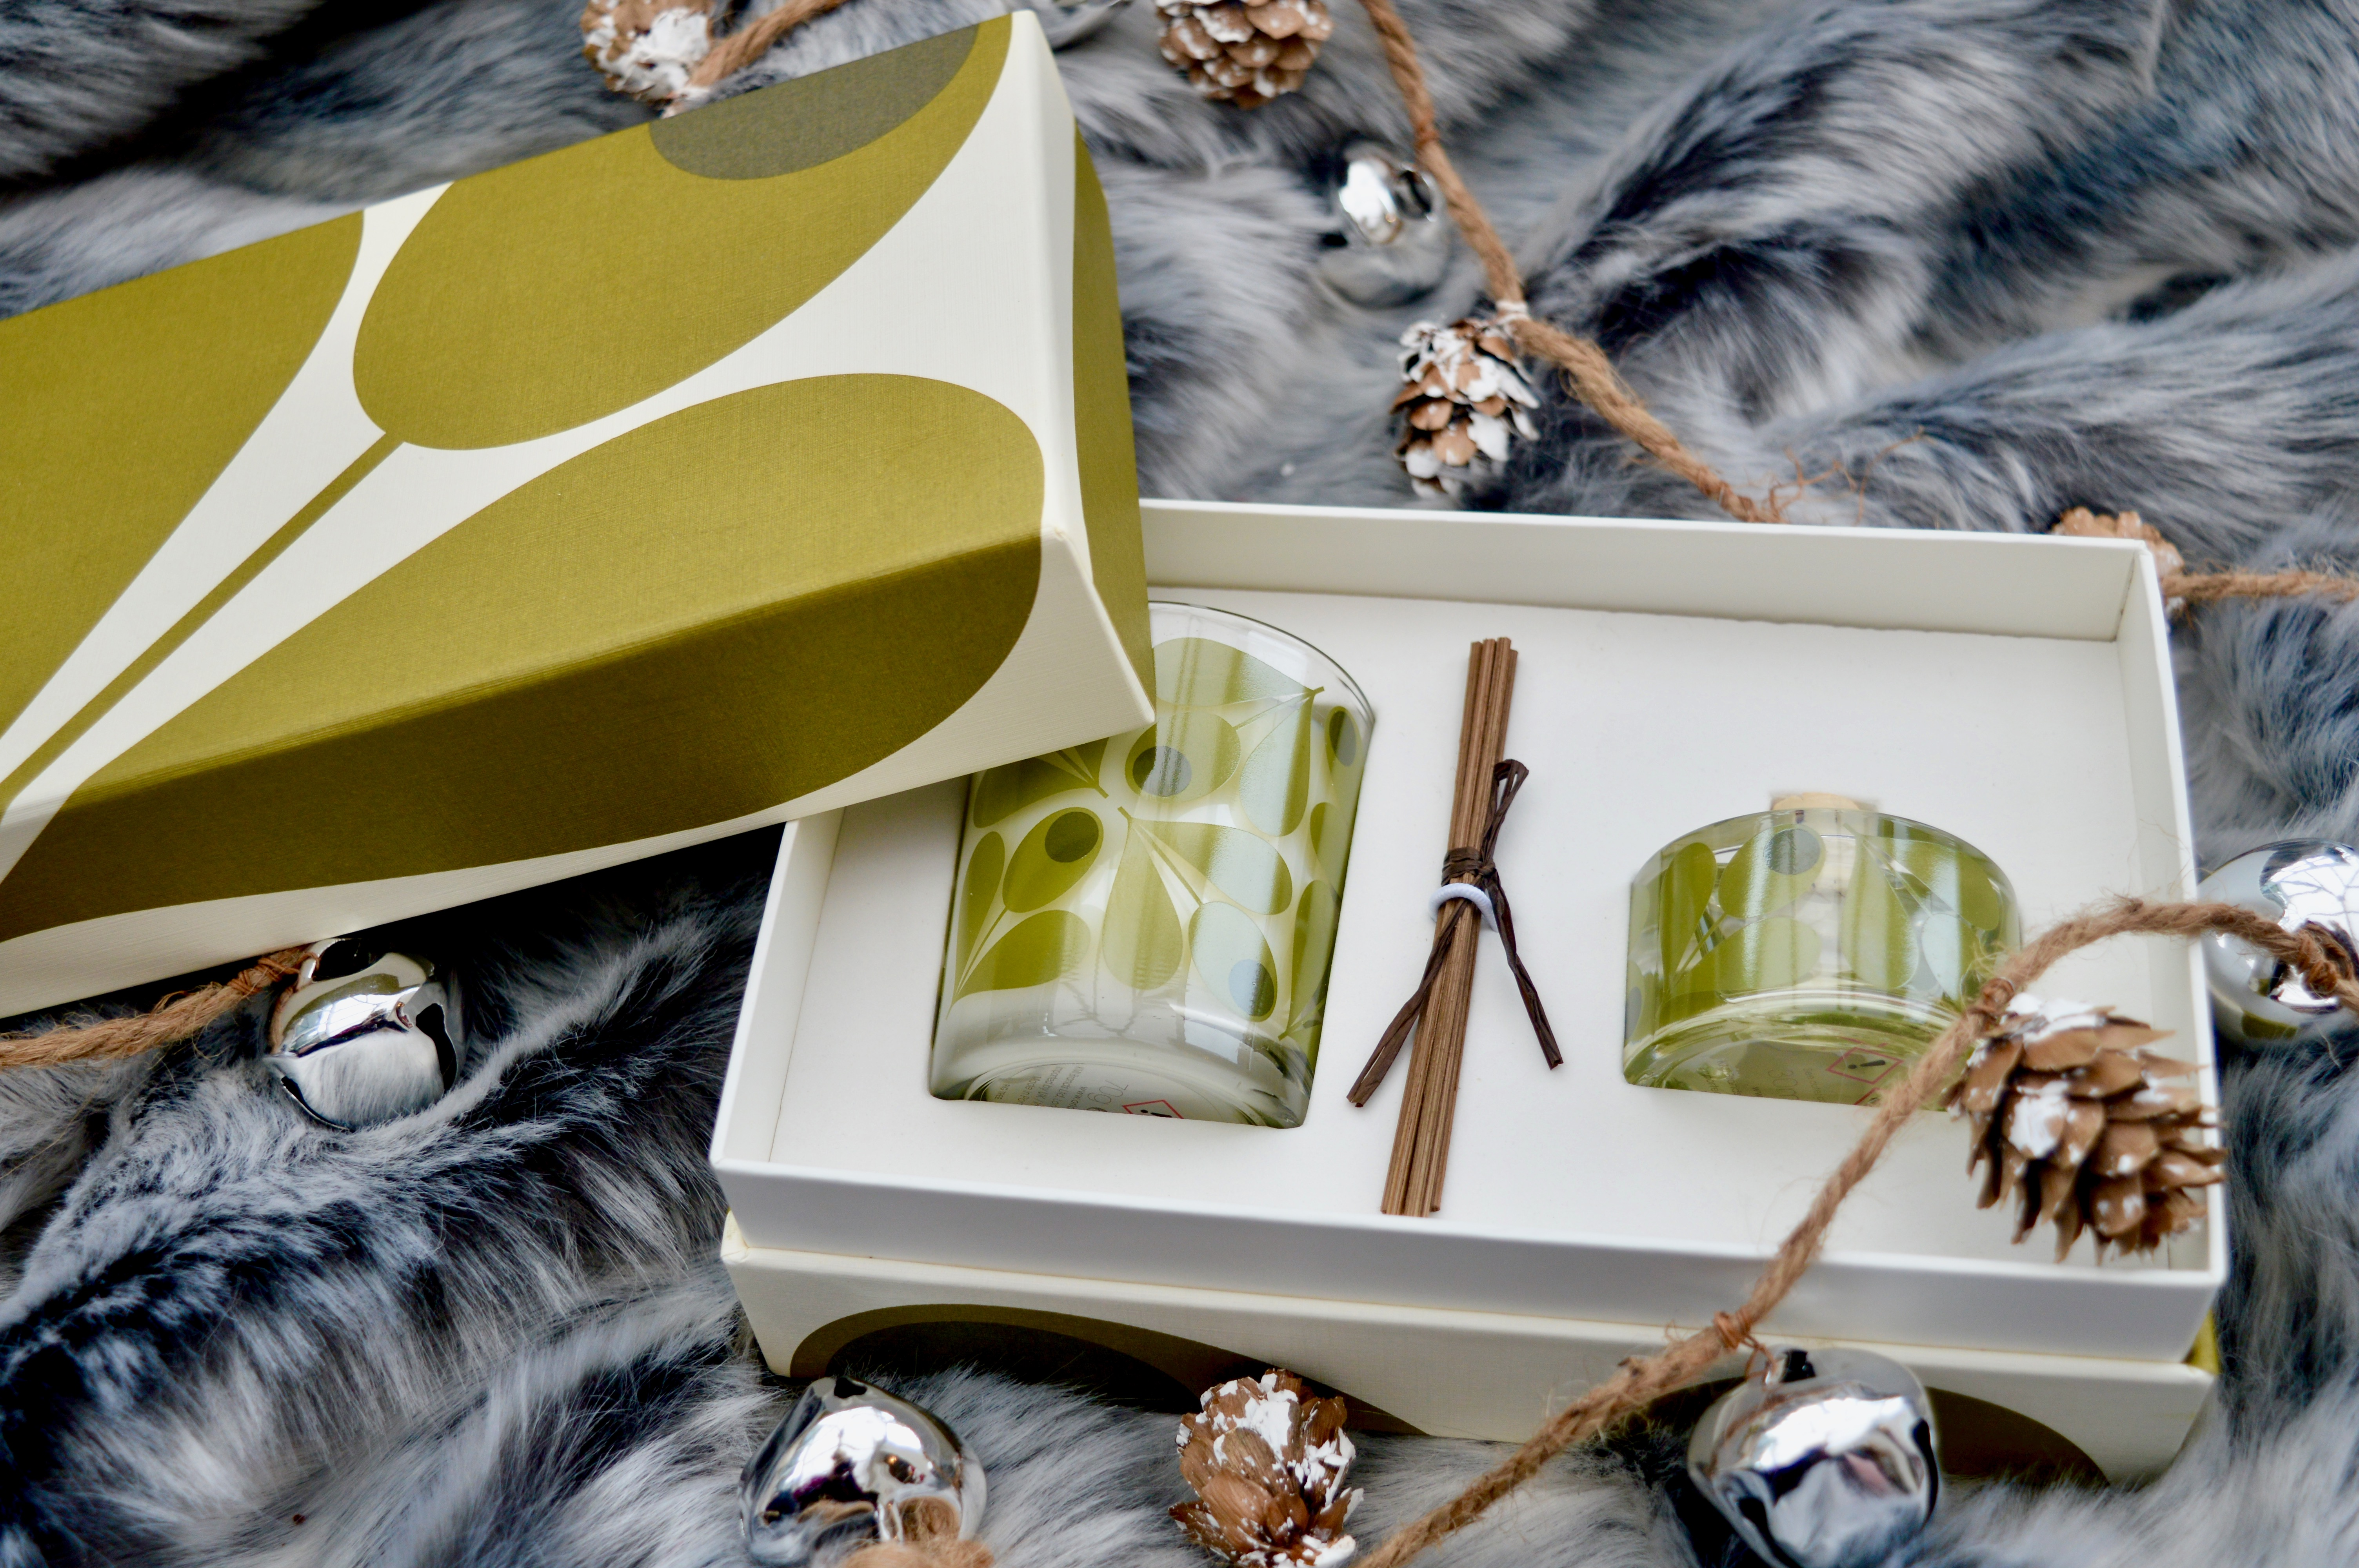 Orla Kiely Fig Tree Reed Diffuser & Candle Set | Home Interiors Gift | Christmas Gift Guide - What to buy your Grandma | Elle Blonde Luxury Lifestyle Destination Blog